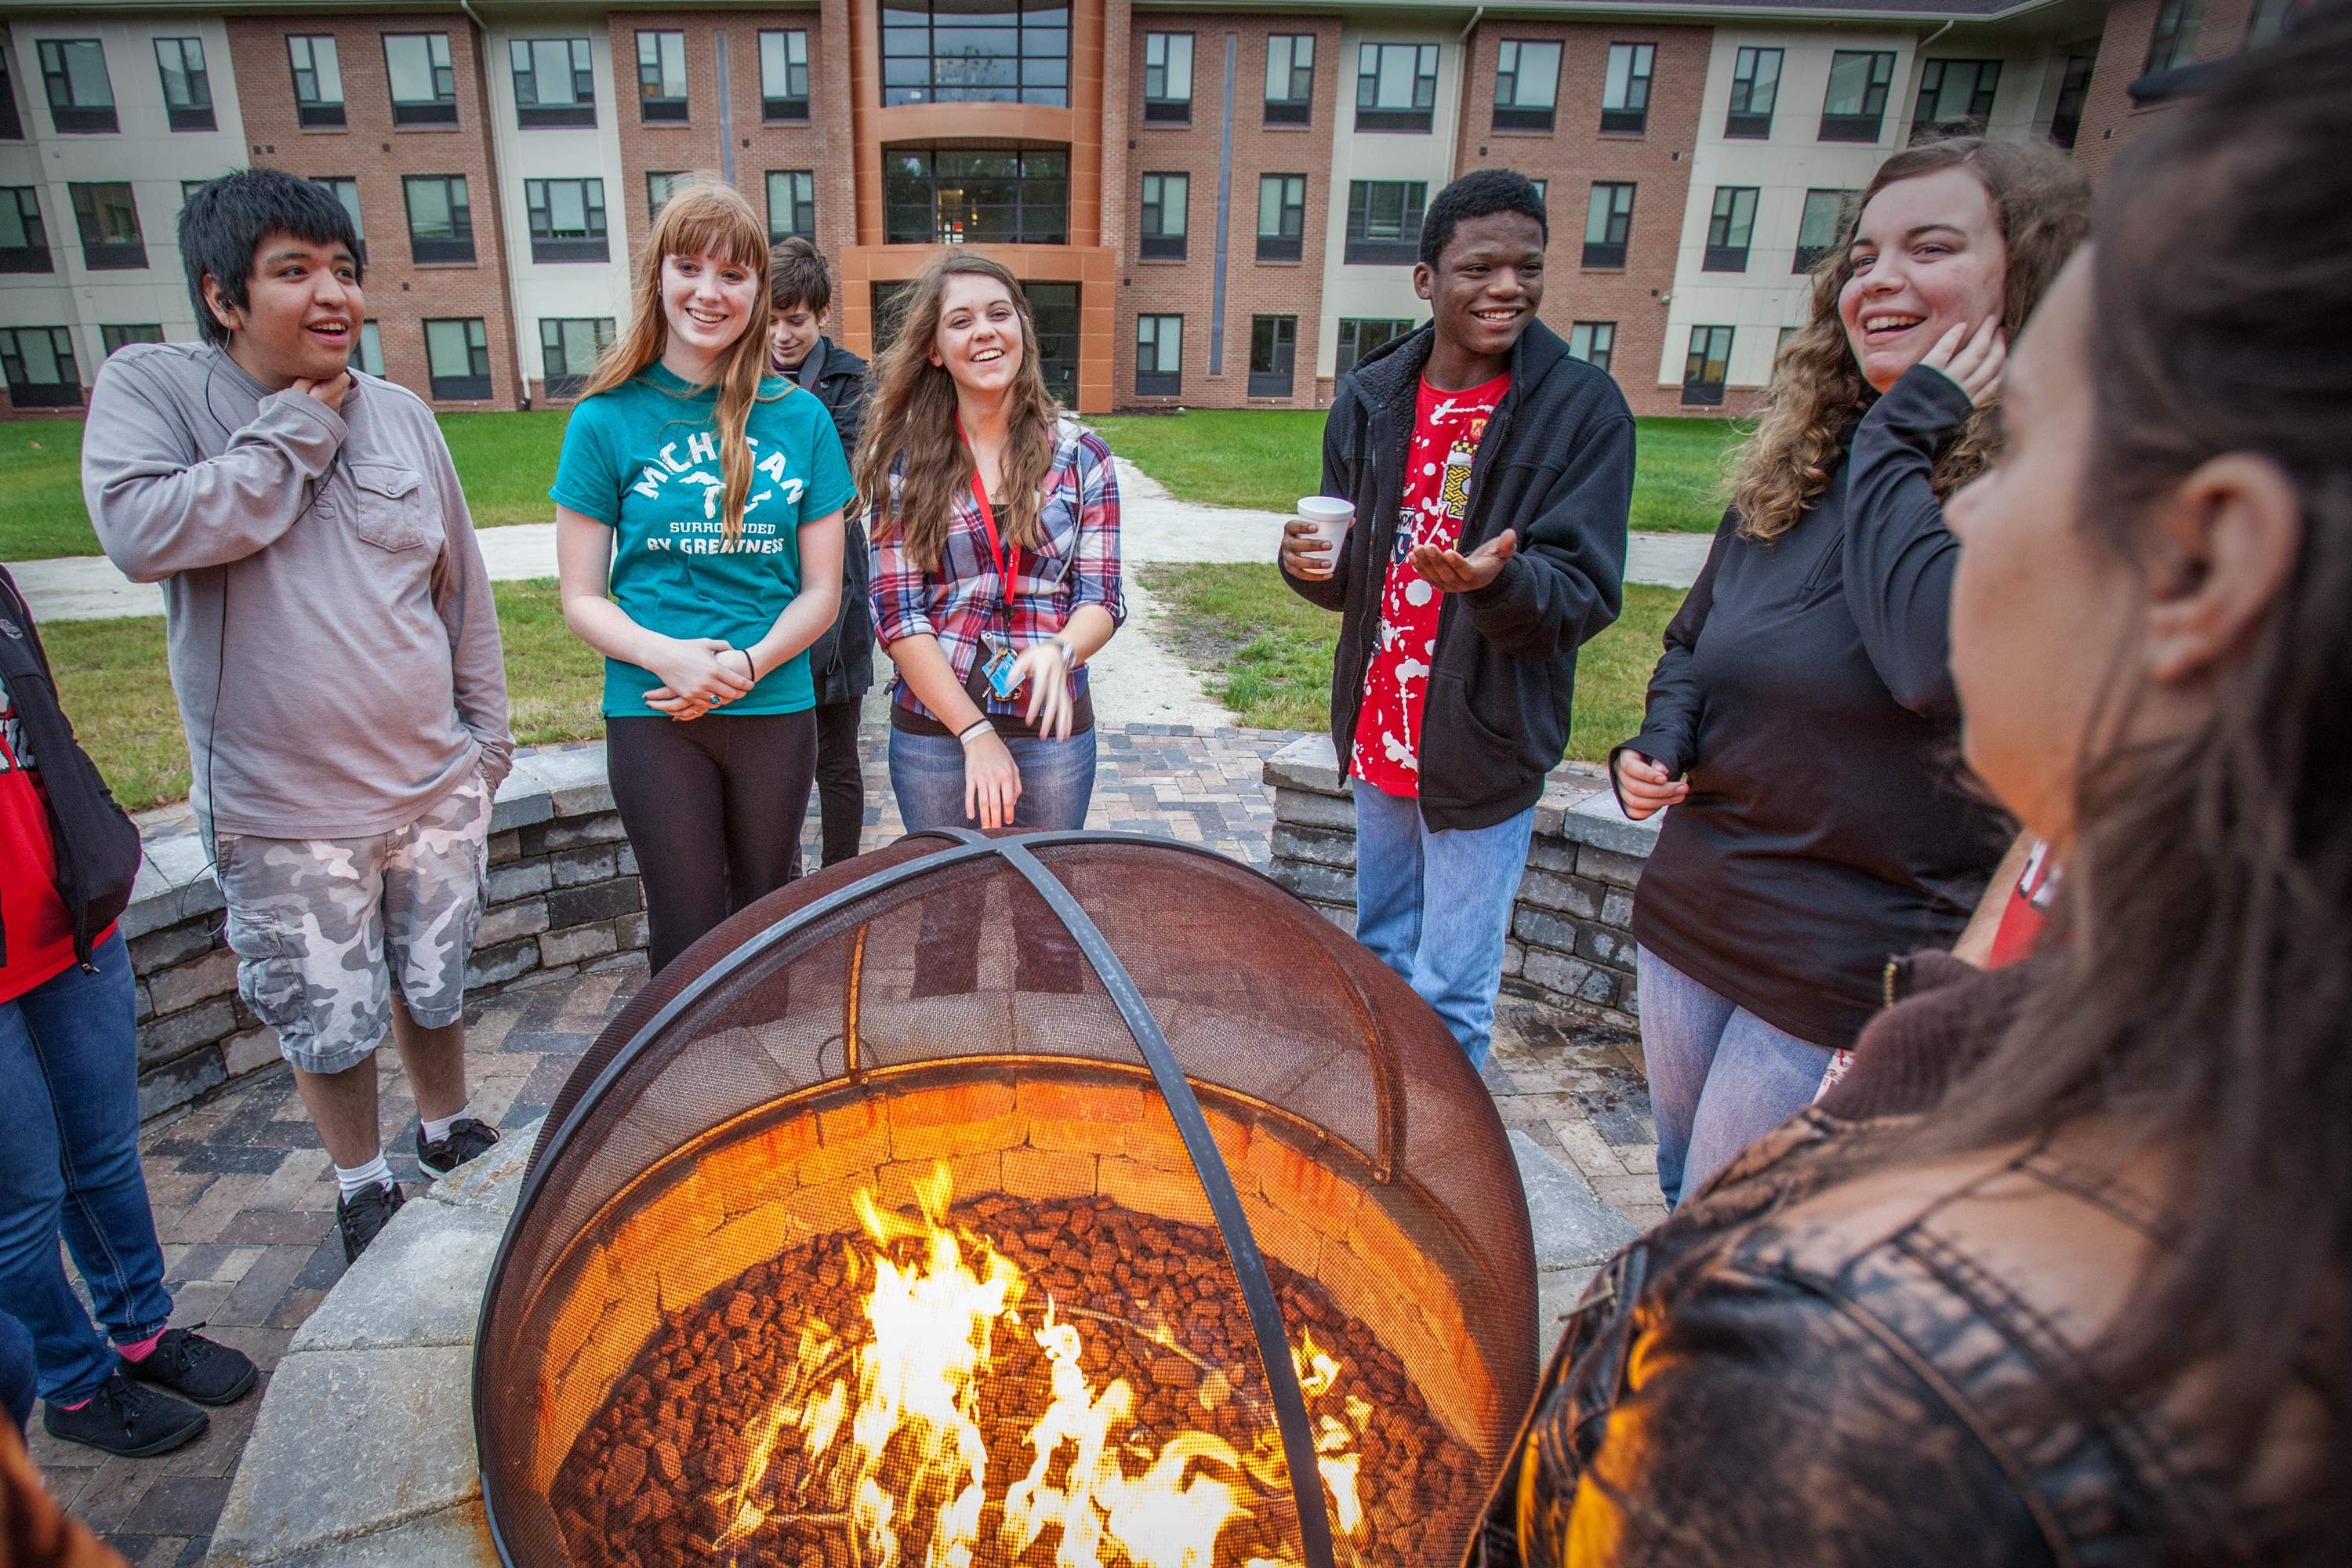 Students around campfire out of Beckwith Hall